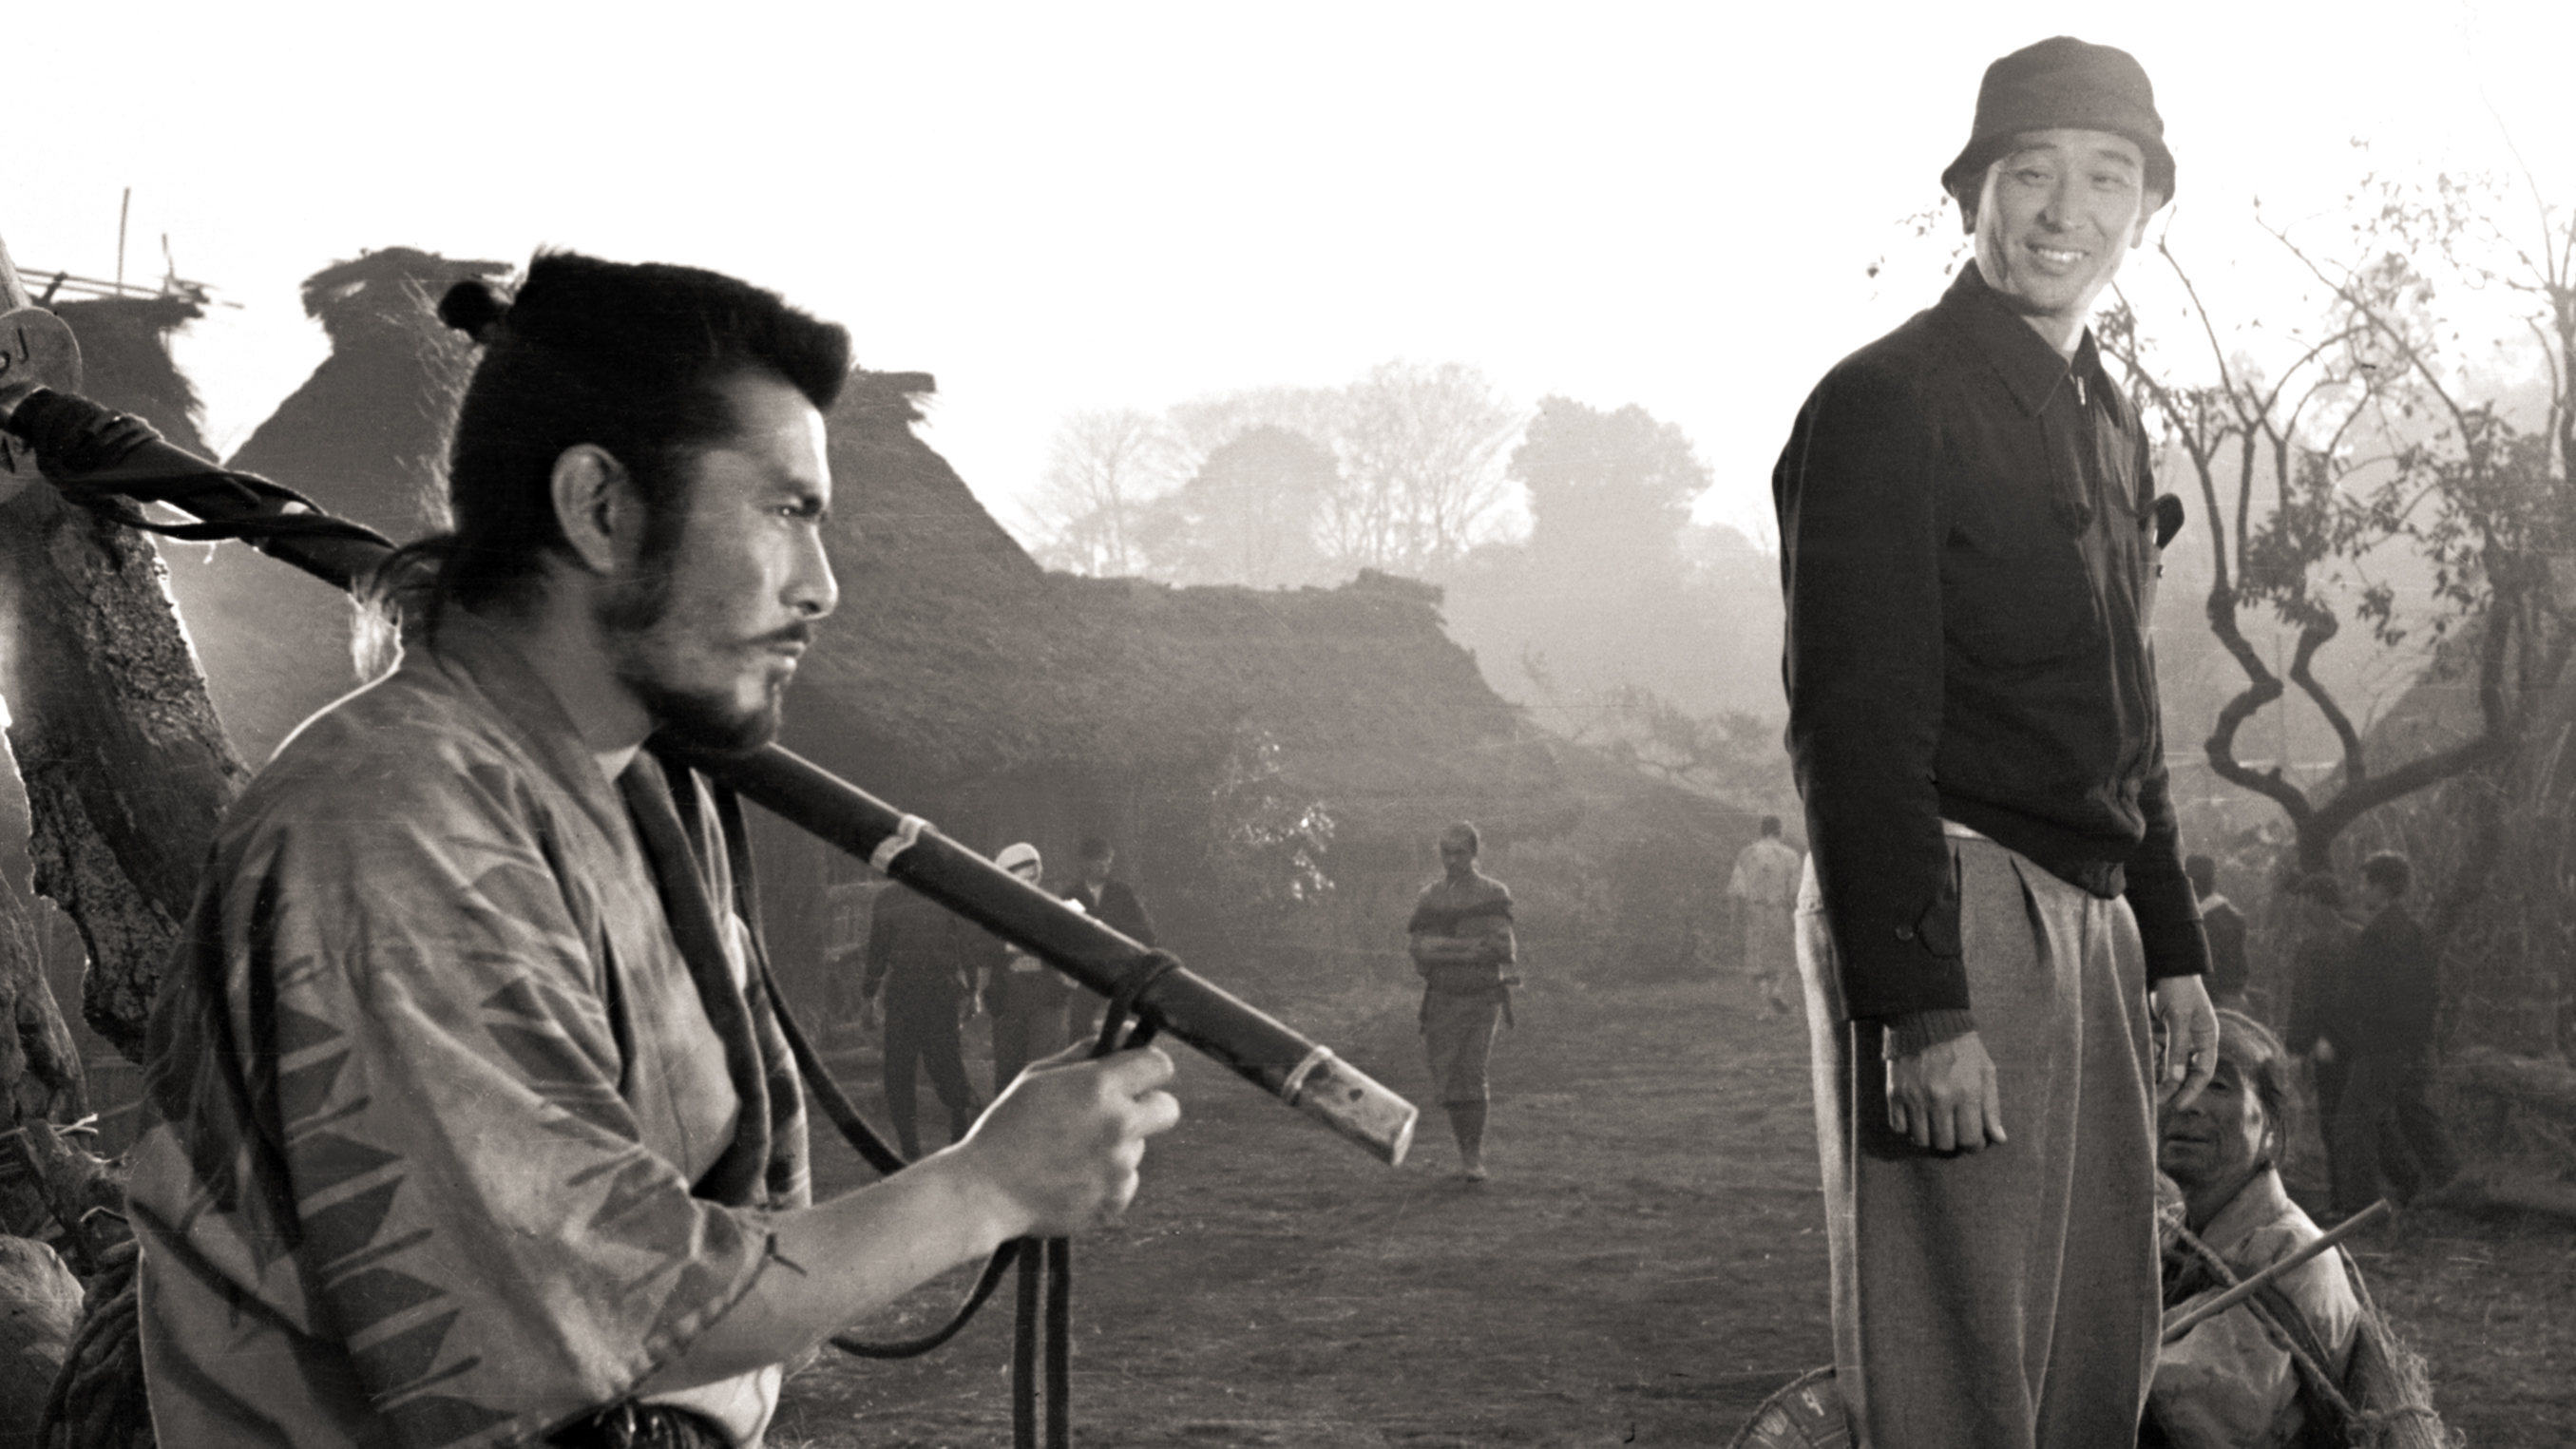 Mifune and Kuroswa on the set of SEVEN SAMURAI